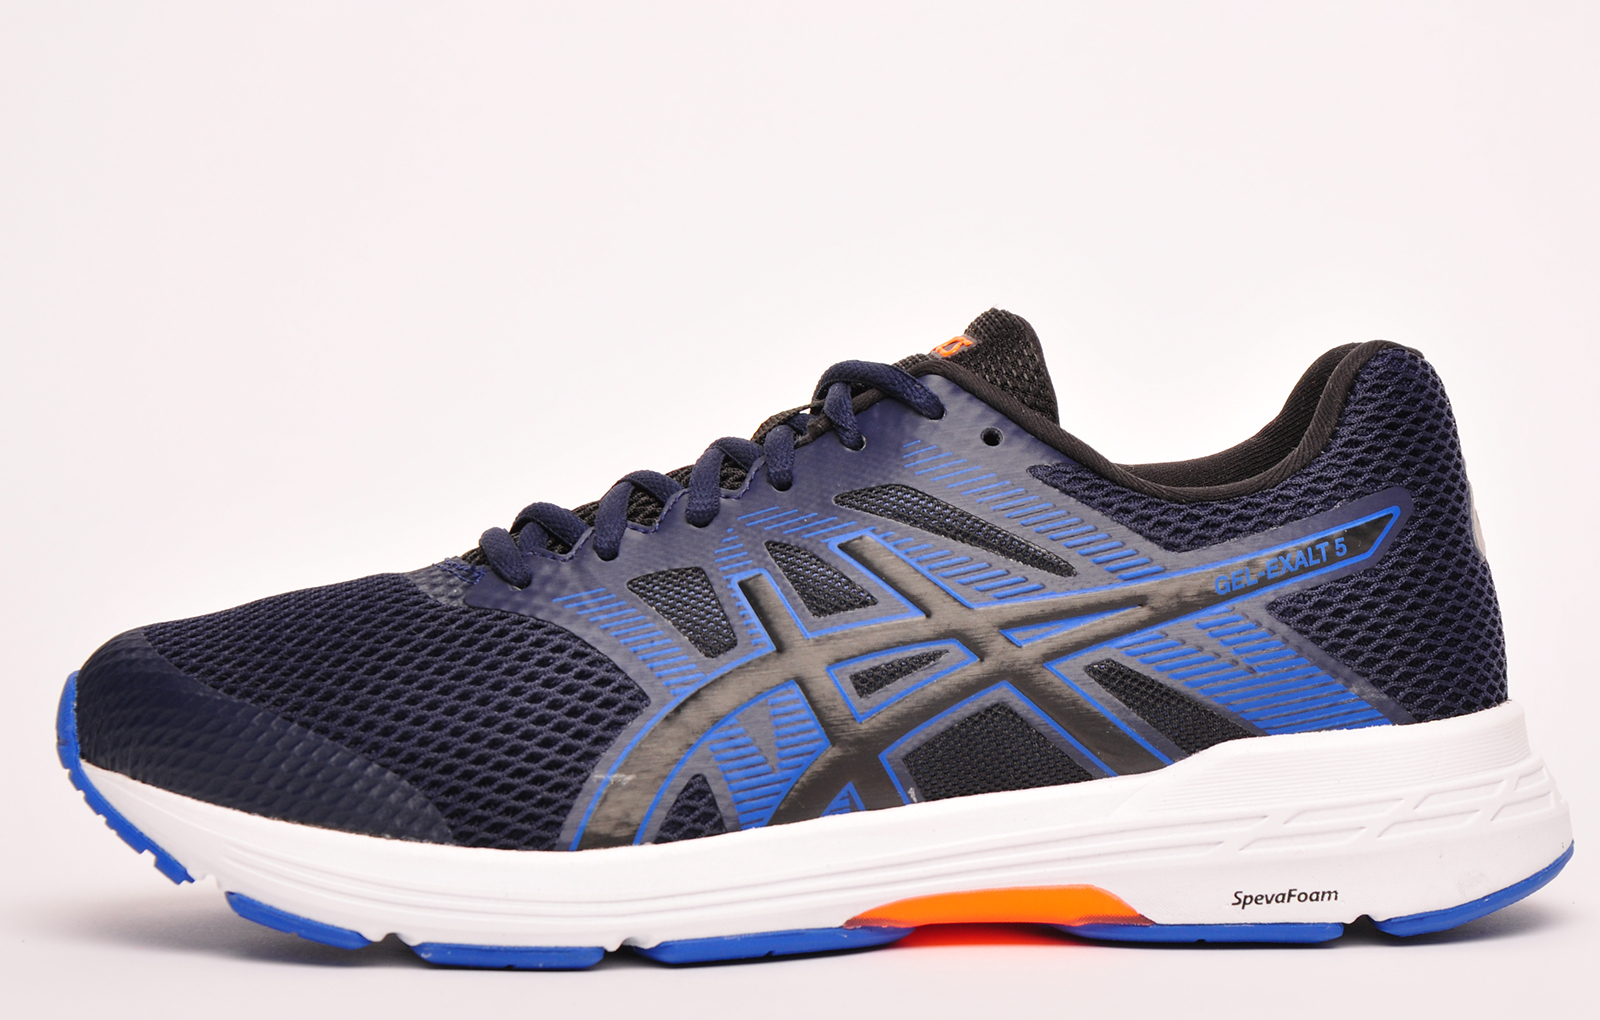 Cheap Asics Trainers   Discount Asics Shoes Sale   Express